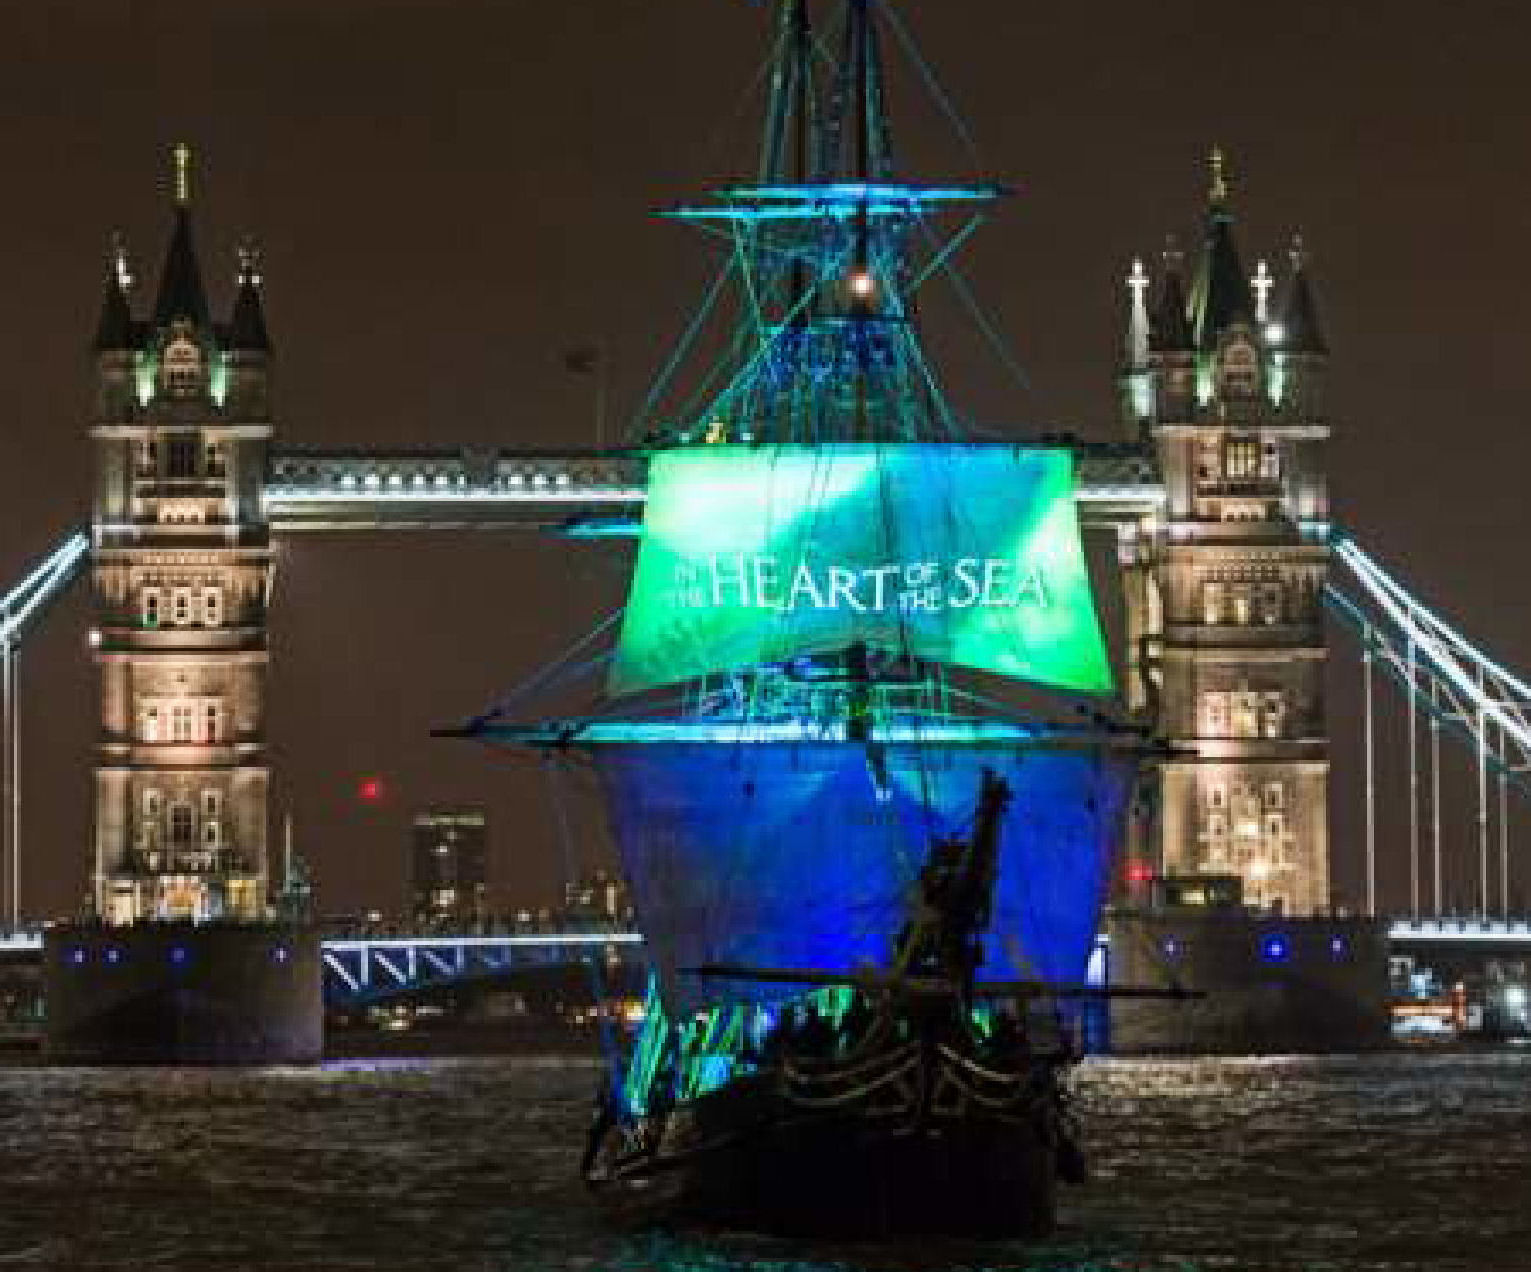 film launch on Thames